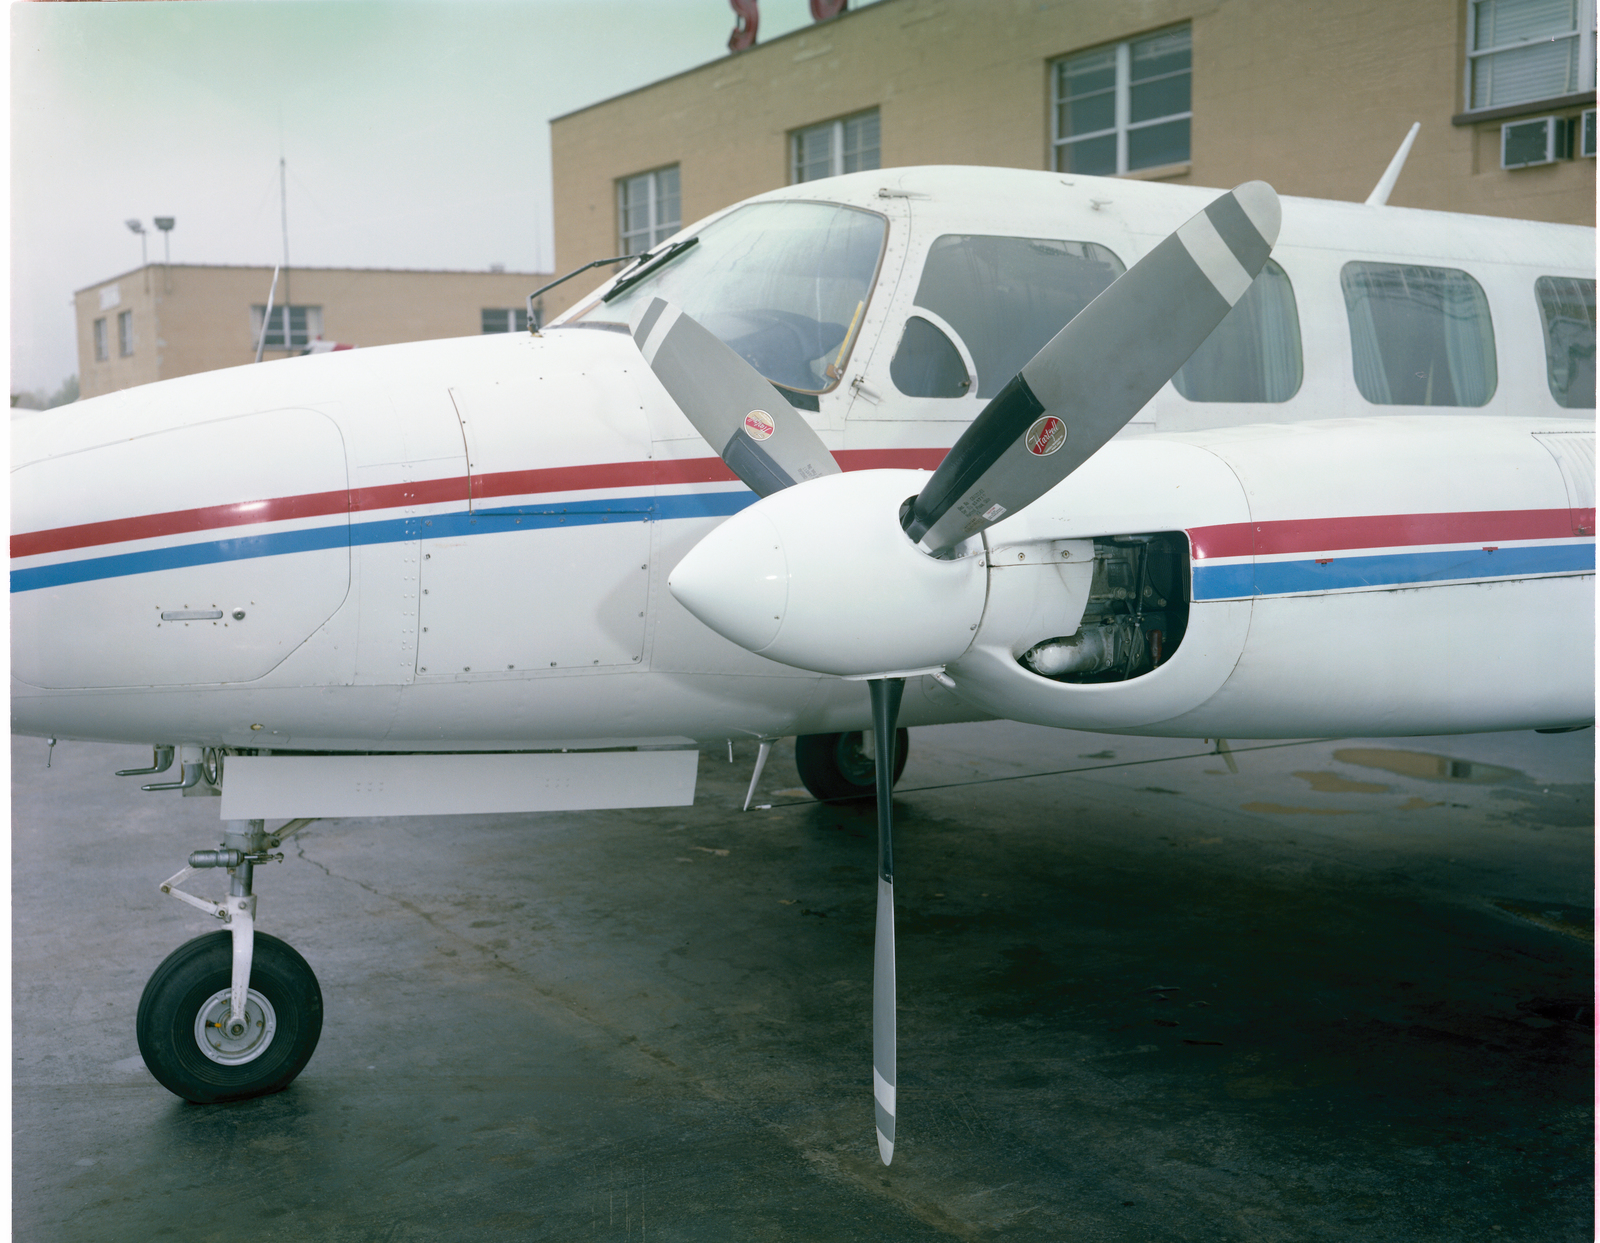 LEFT NACELLE AND PROPELLER OF THE BEECHCRAFT TWIN BONANZA AIRPLANE OWNED BY THE MOHICAN AIR SERVICE